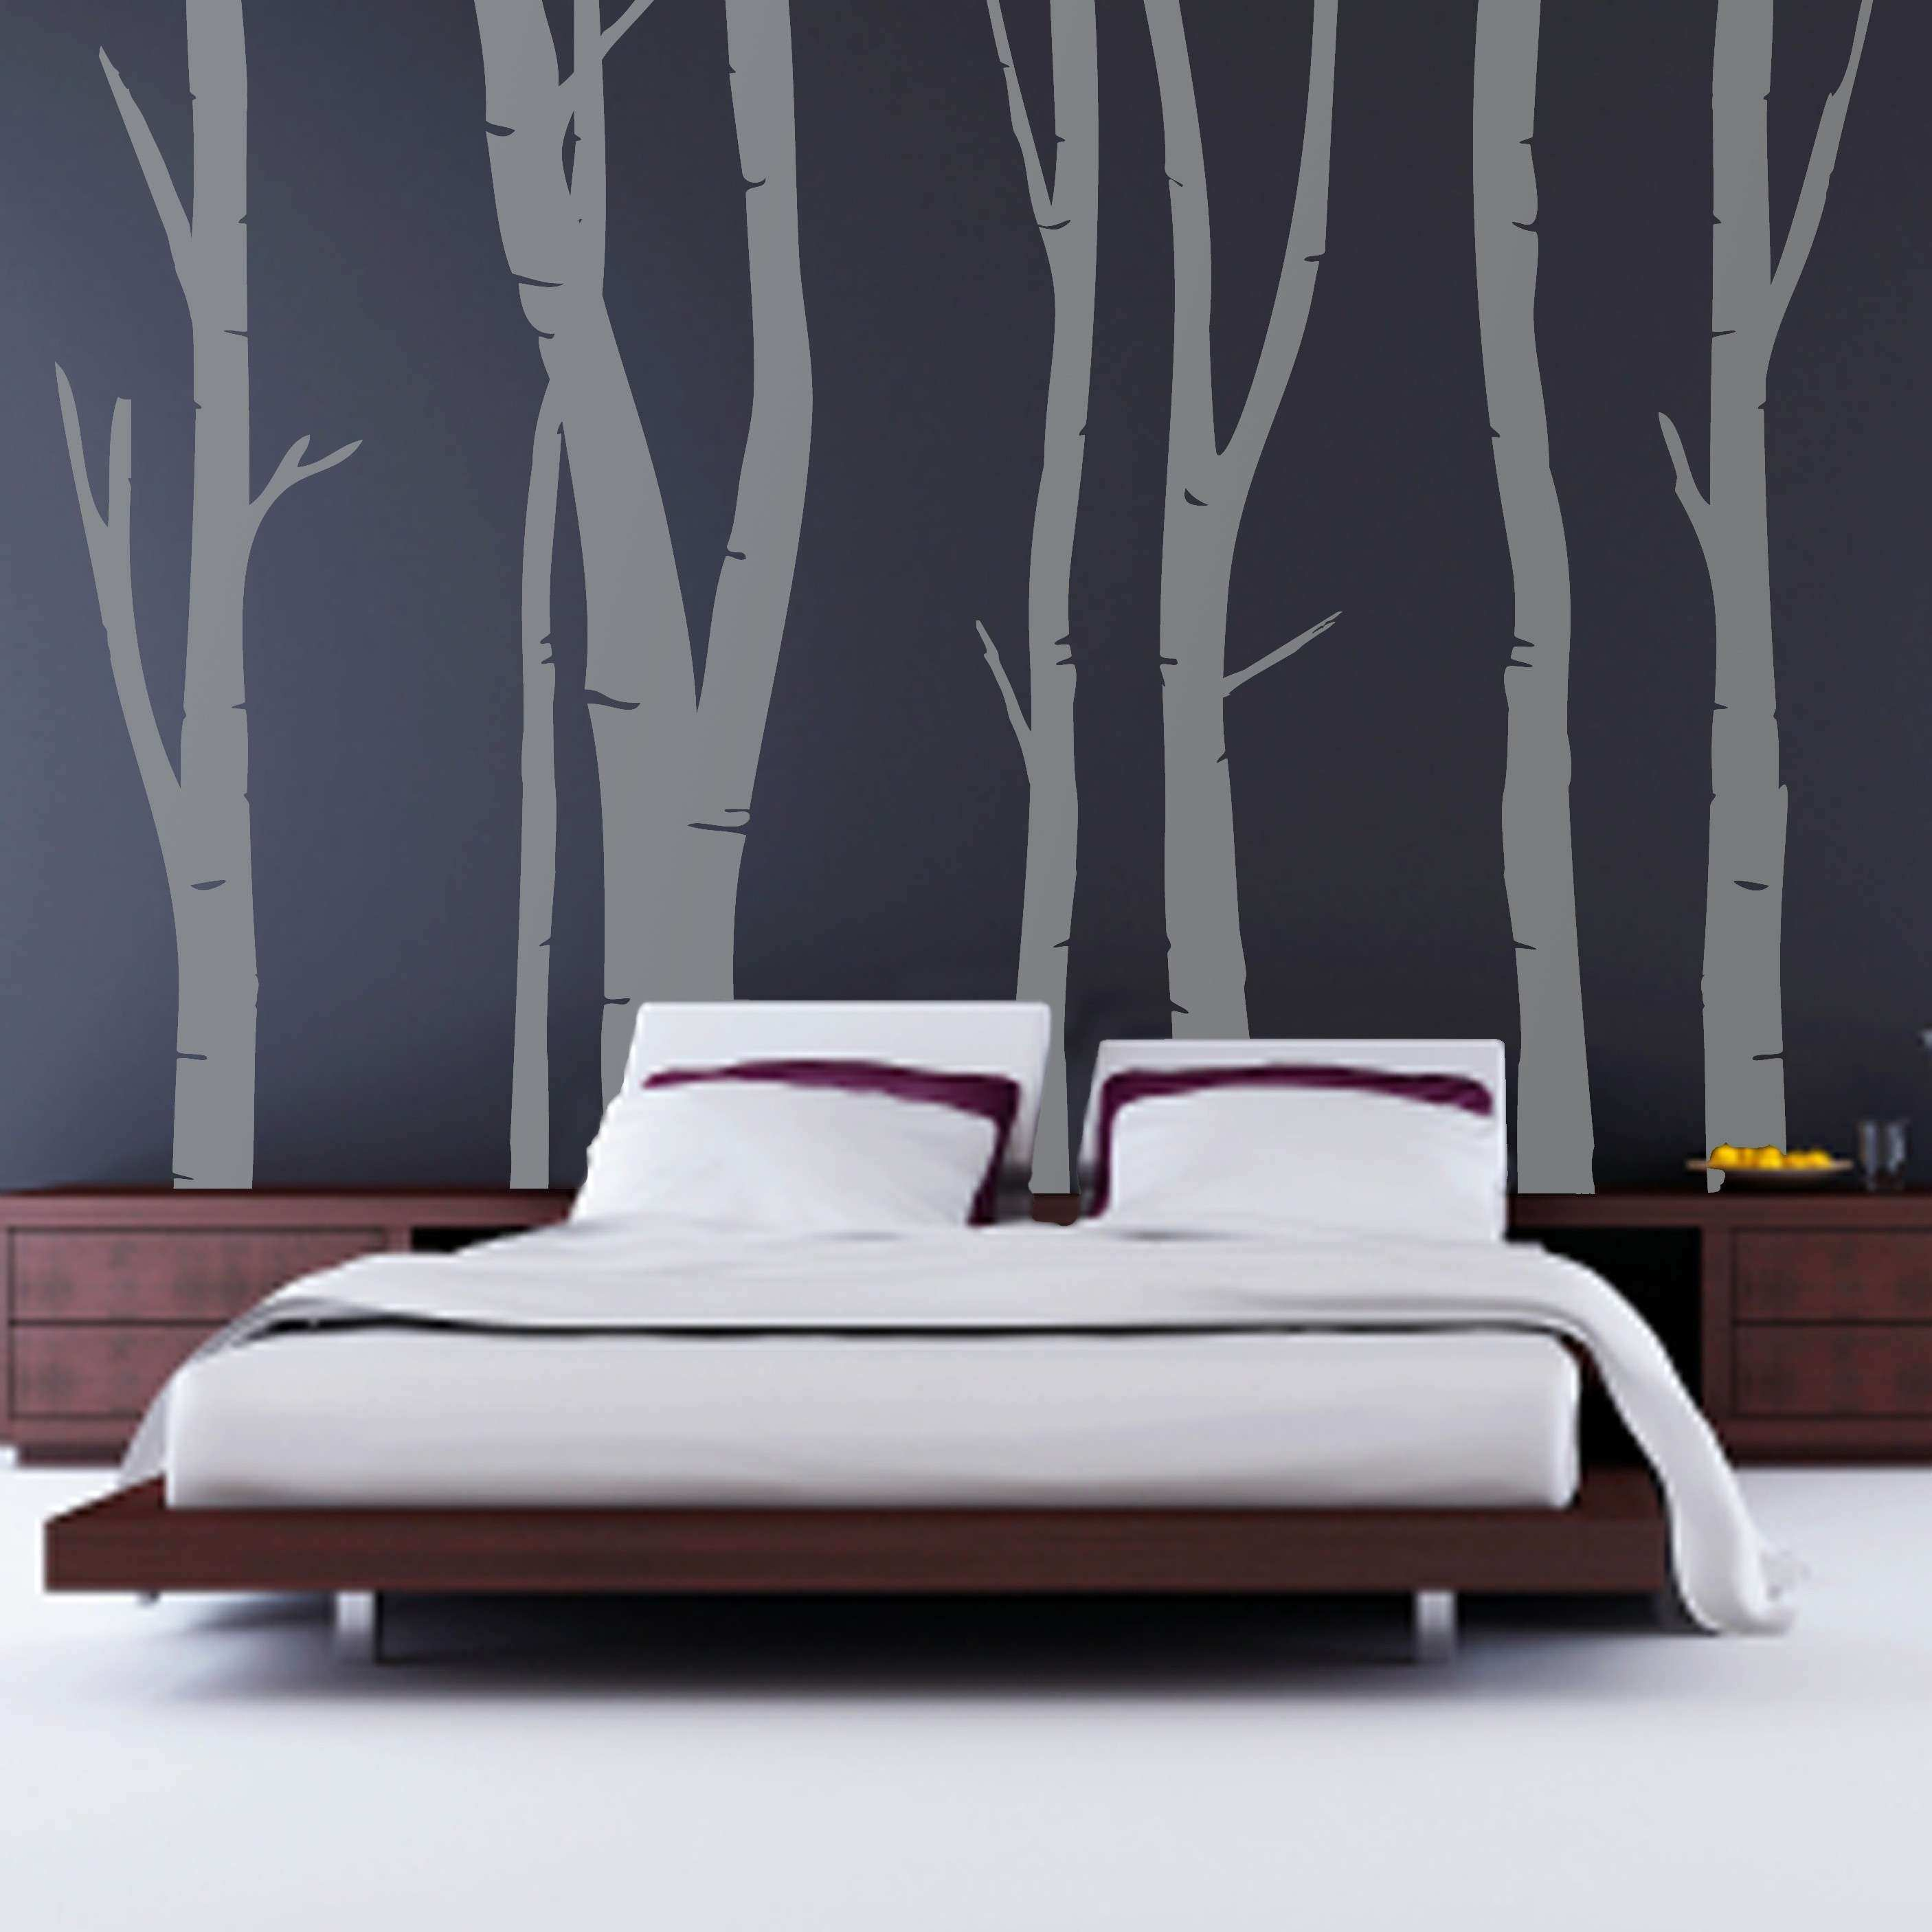 Home and Decor Ideas Awesome Wall Decals for Bedroom Unique 1